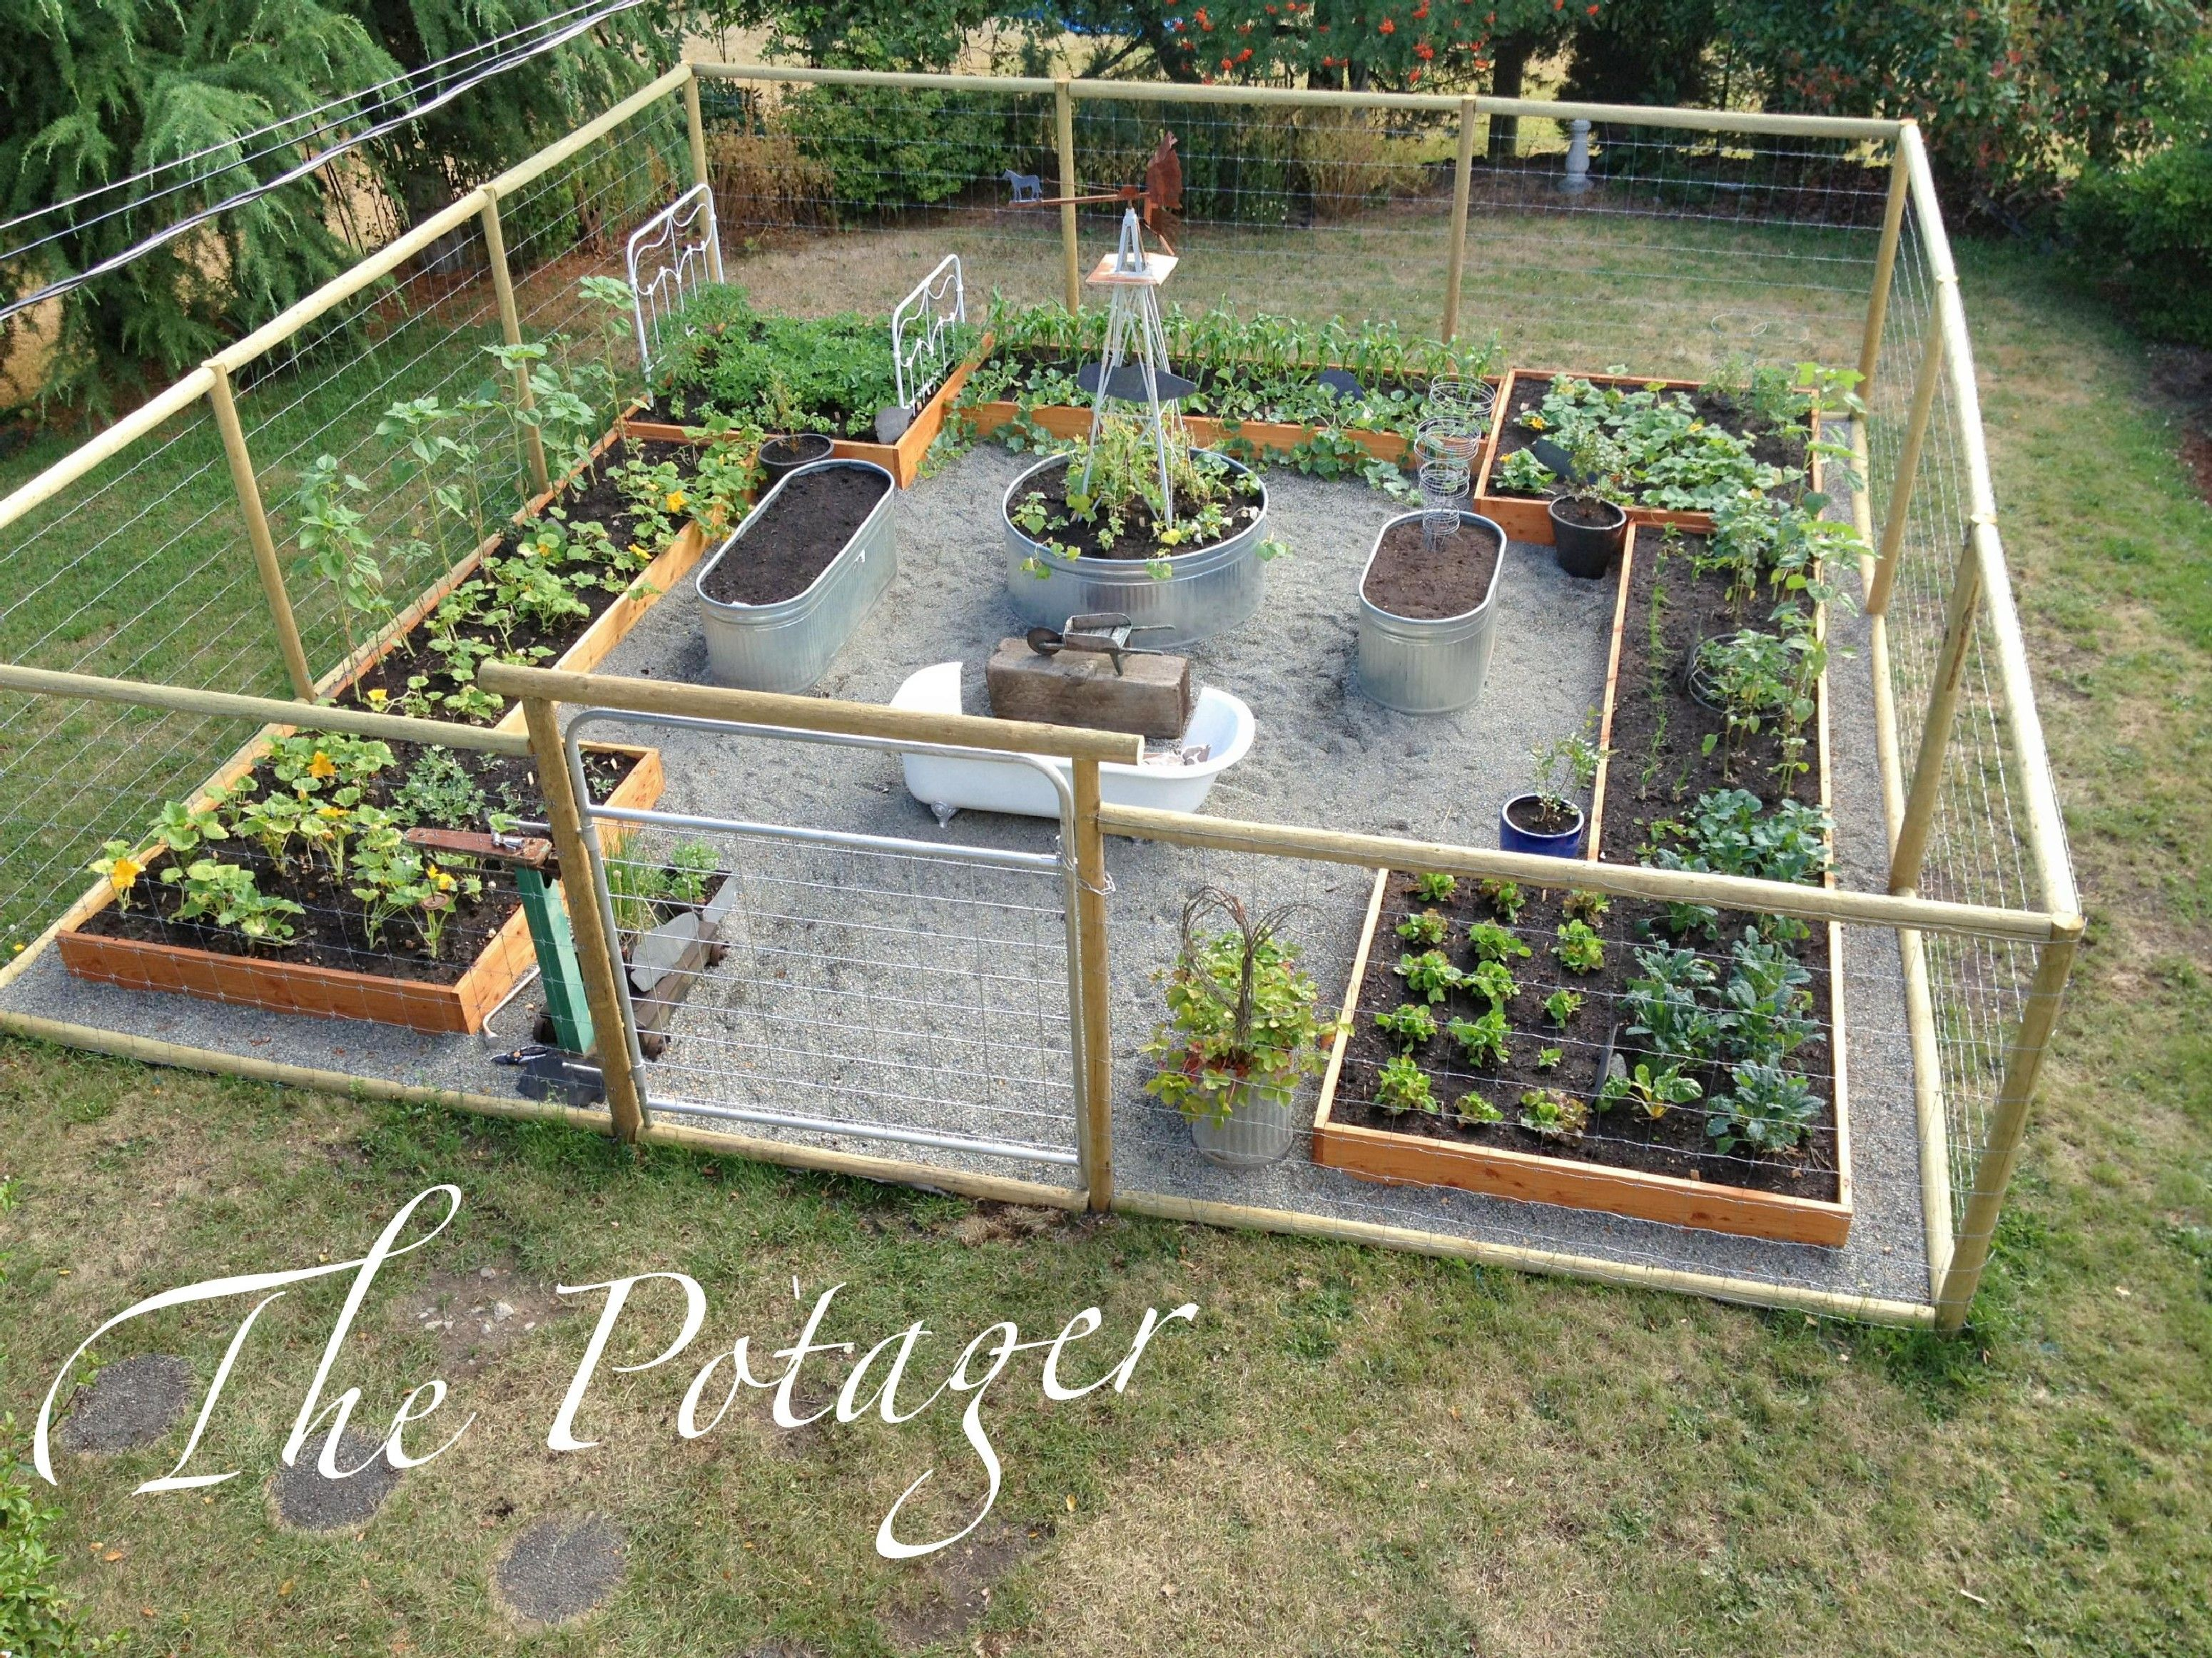 Starting Vegetable Gardening Awesome Vegetable Garden Ideas 40 Pictures Trends Ht Fenced Vegetable Garden Vegetable Garden Planning Raised Vegetable Gardens